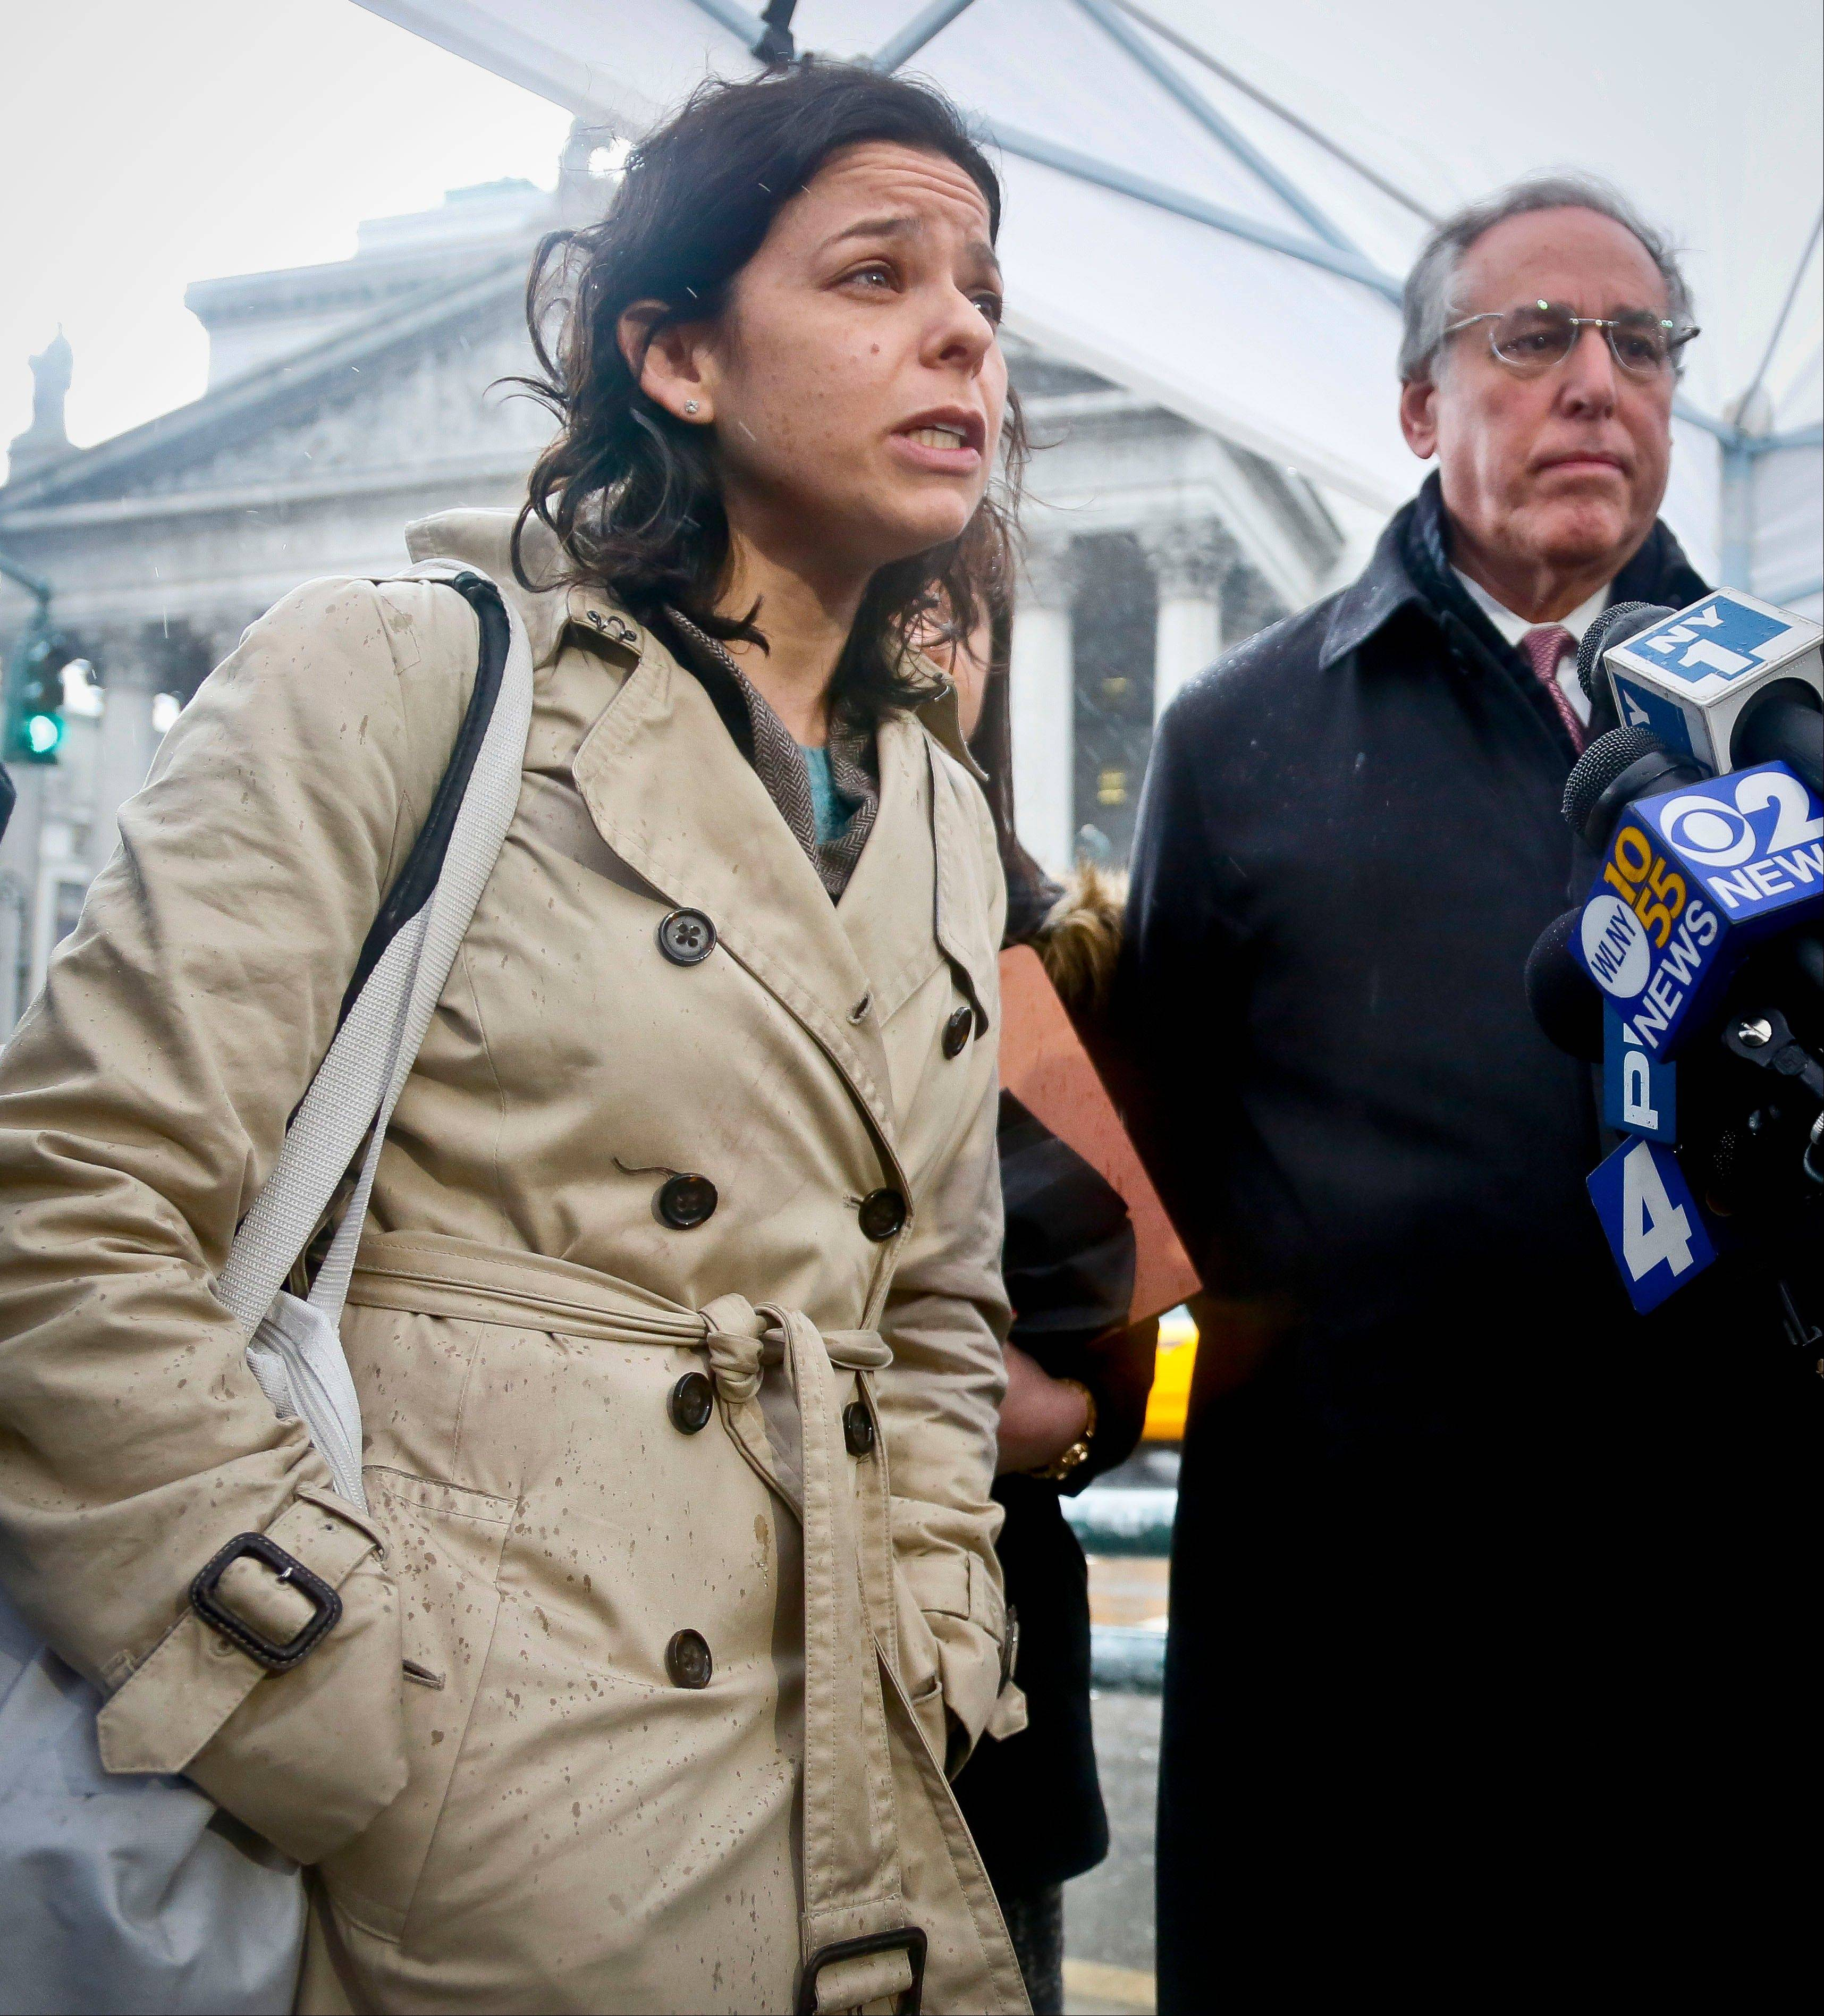 "Defense lawyers, Julia Gatto, left, and, Robert Baum, hold a news briefing on Tuesday, March 12, 2013 in New York. A federal jury convicted their client, New York City police officer Gilberto Valle, of charges he plotted to kidnap and cook women to dine on their ""girl meat."" Valle, 28, faces up to life in prison when he is sentenced on June 19. With the conviction, he loses his job as a police officer."